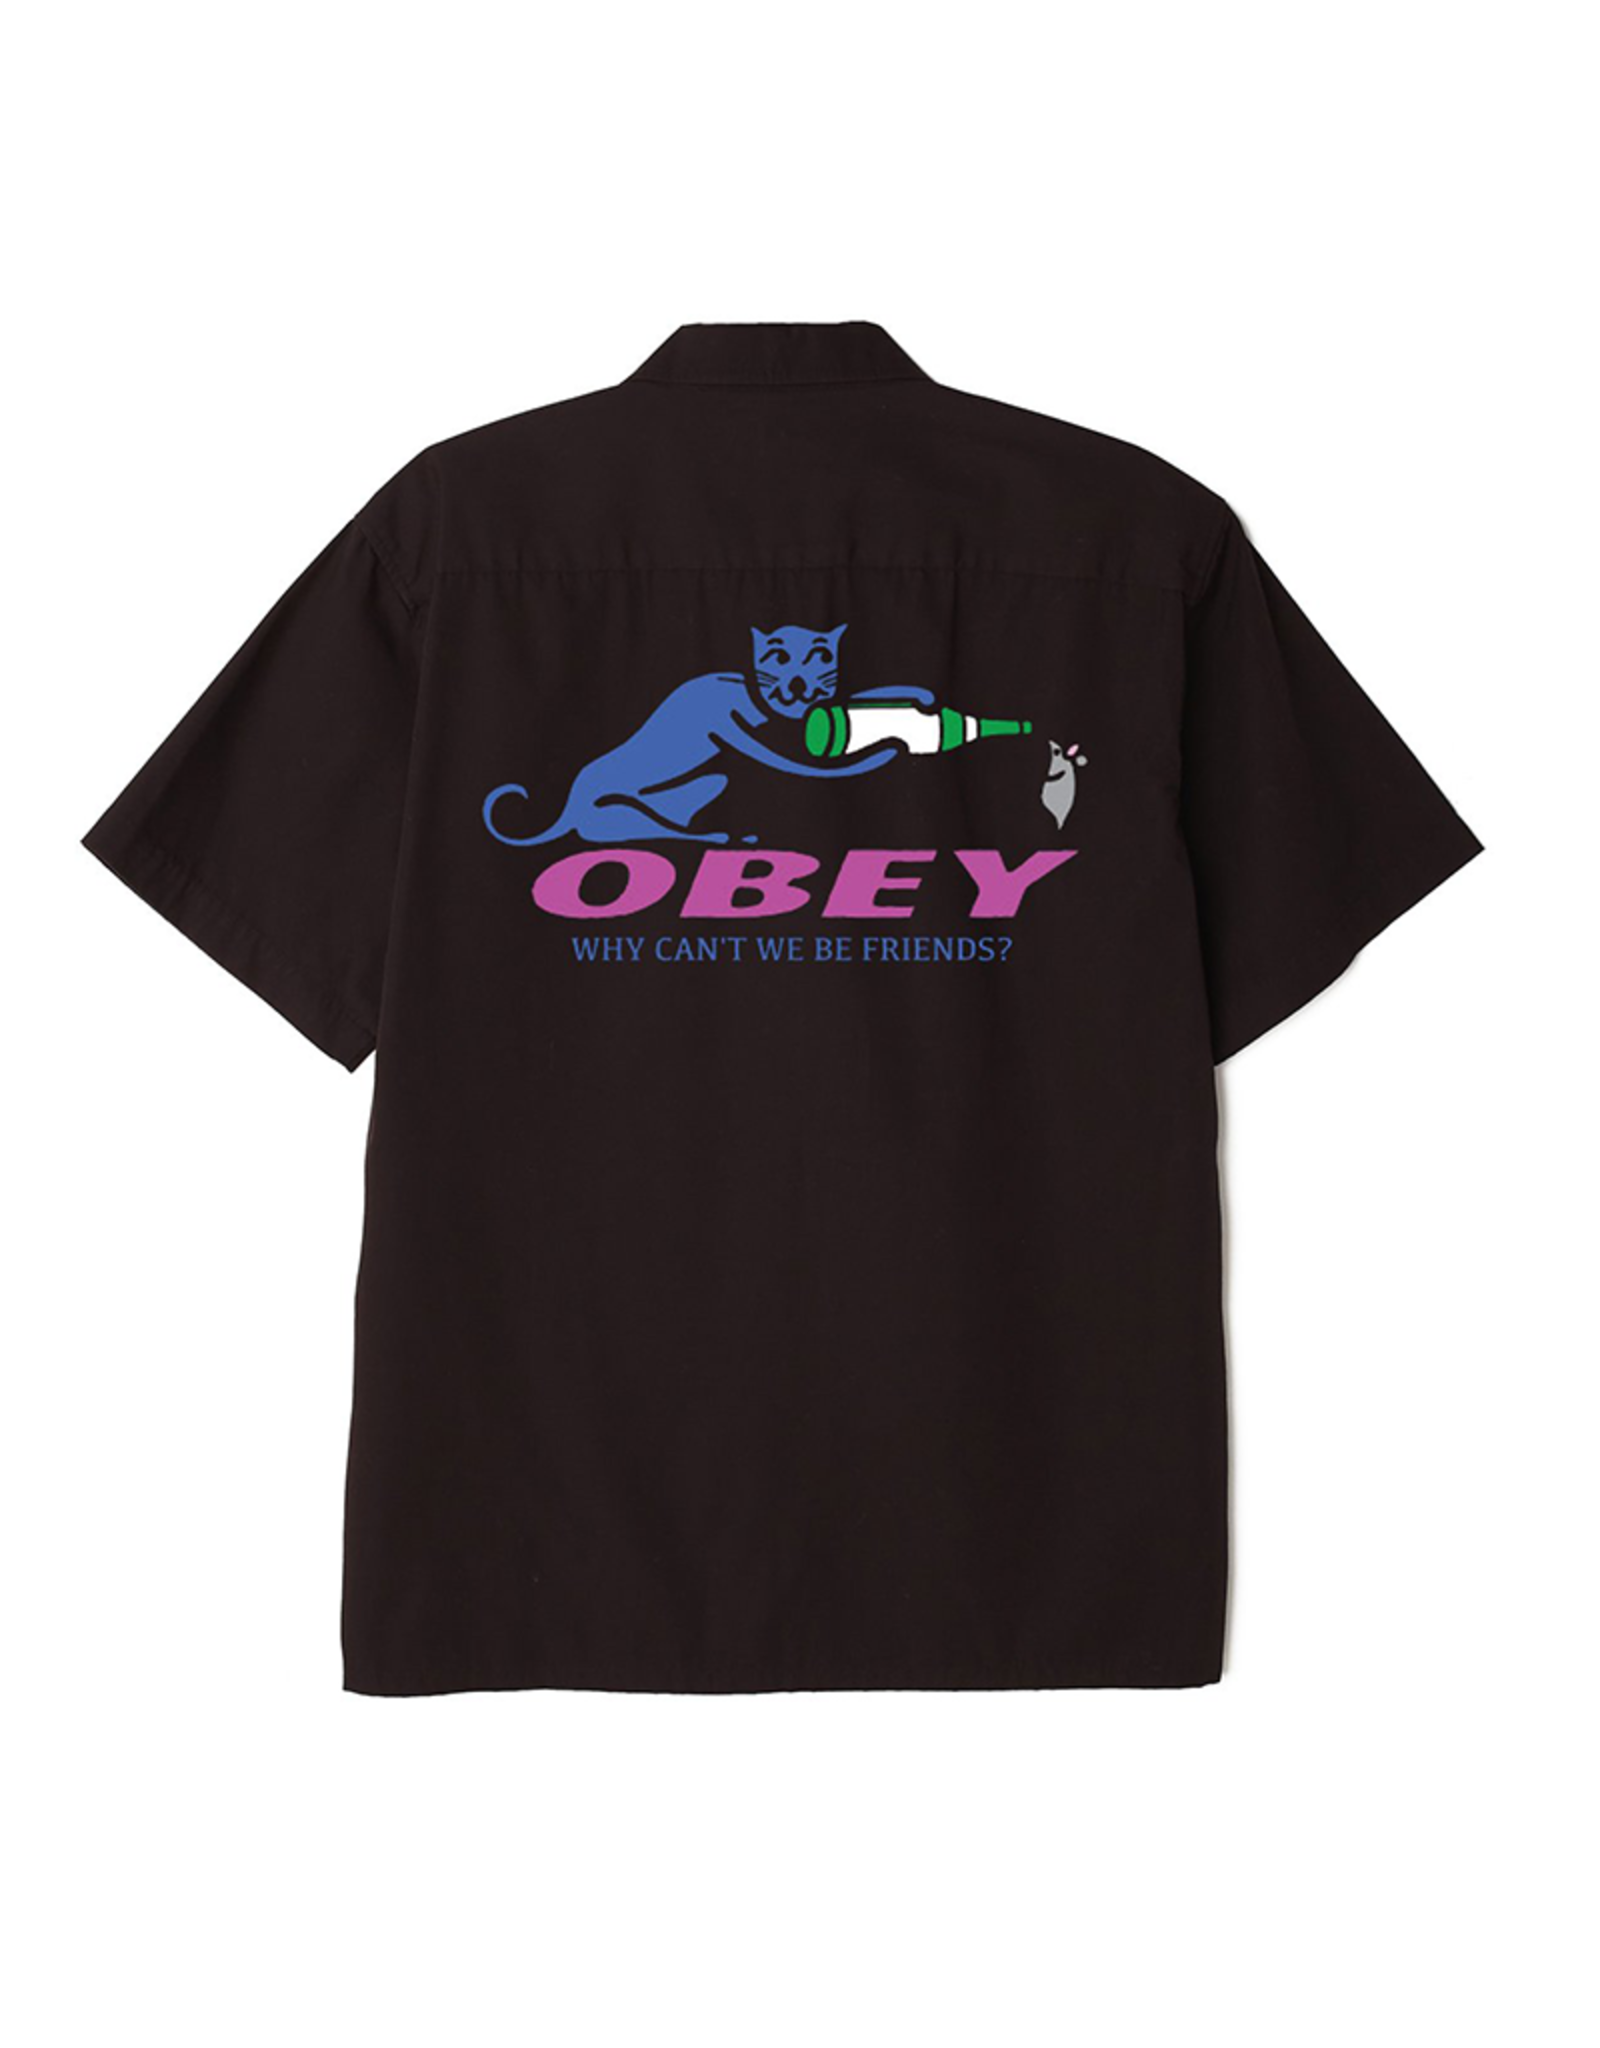 Obey Why Can't We Be Friends Button Down Shirt